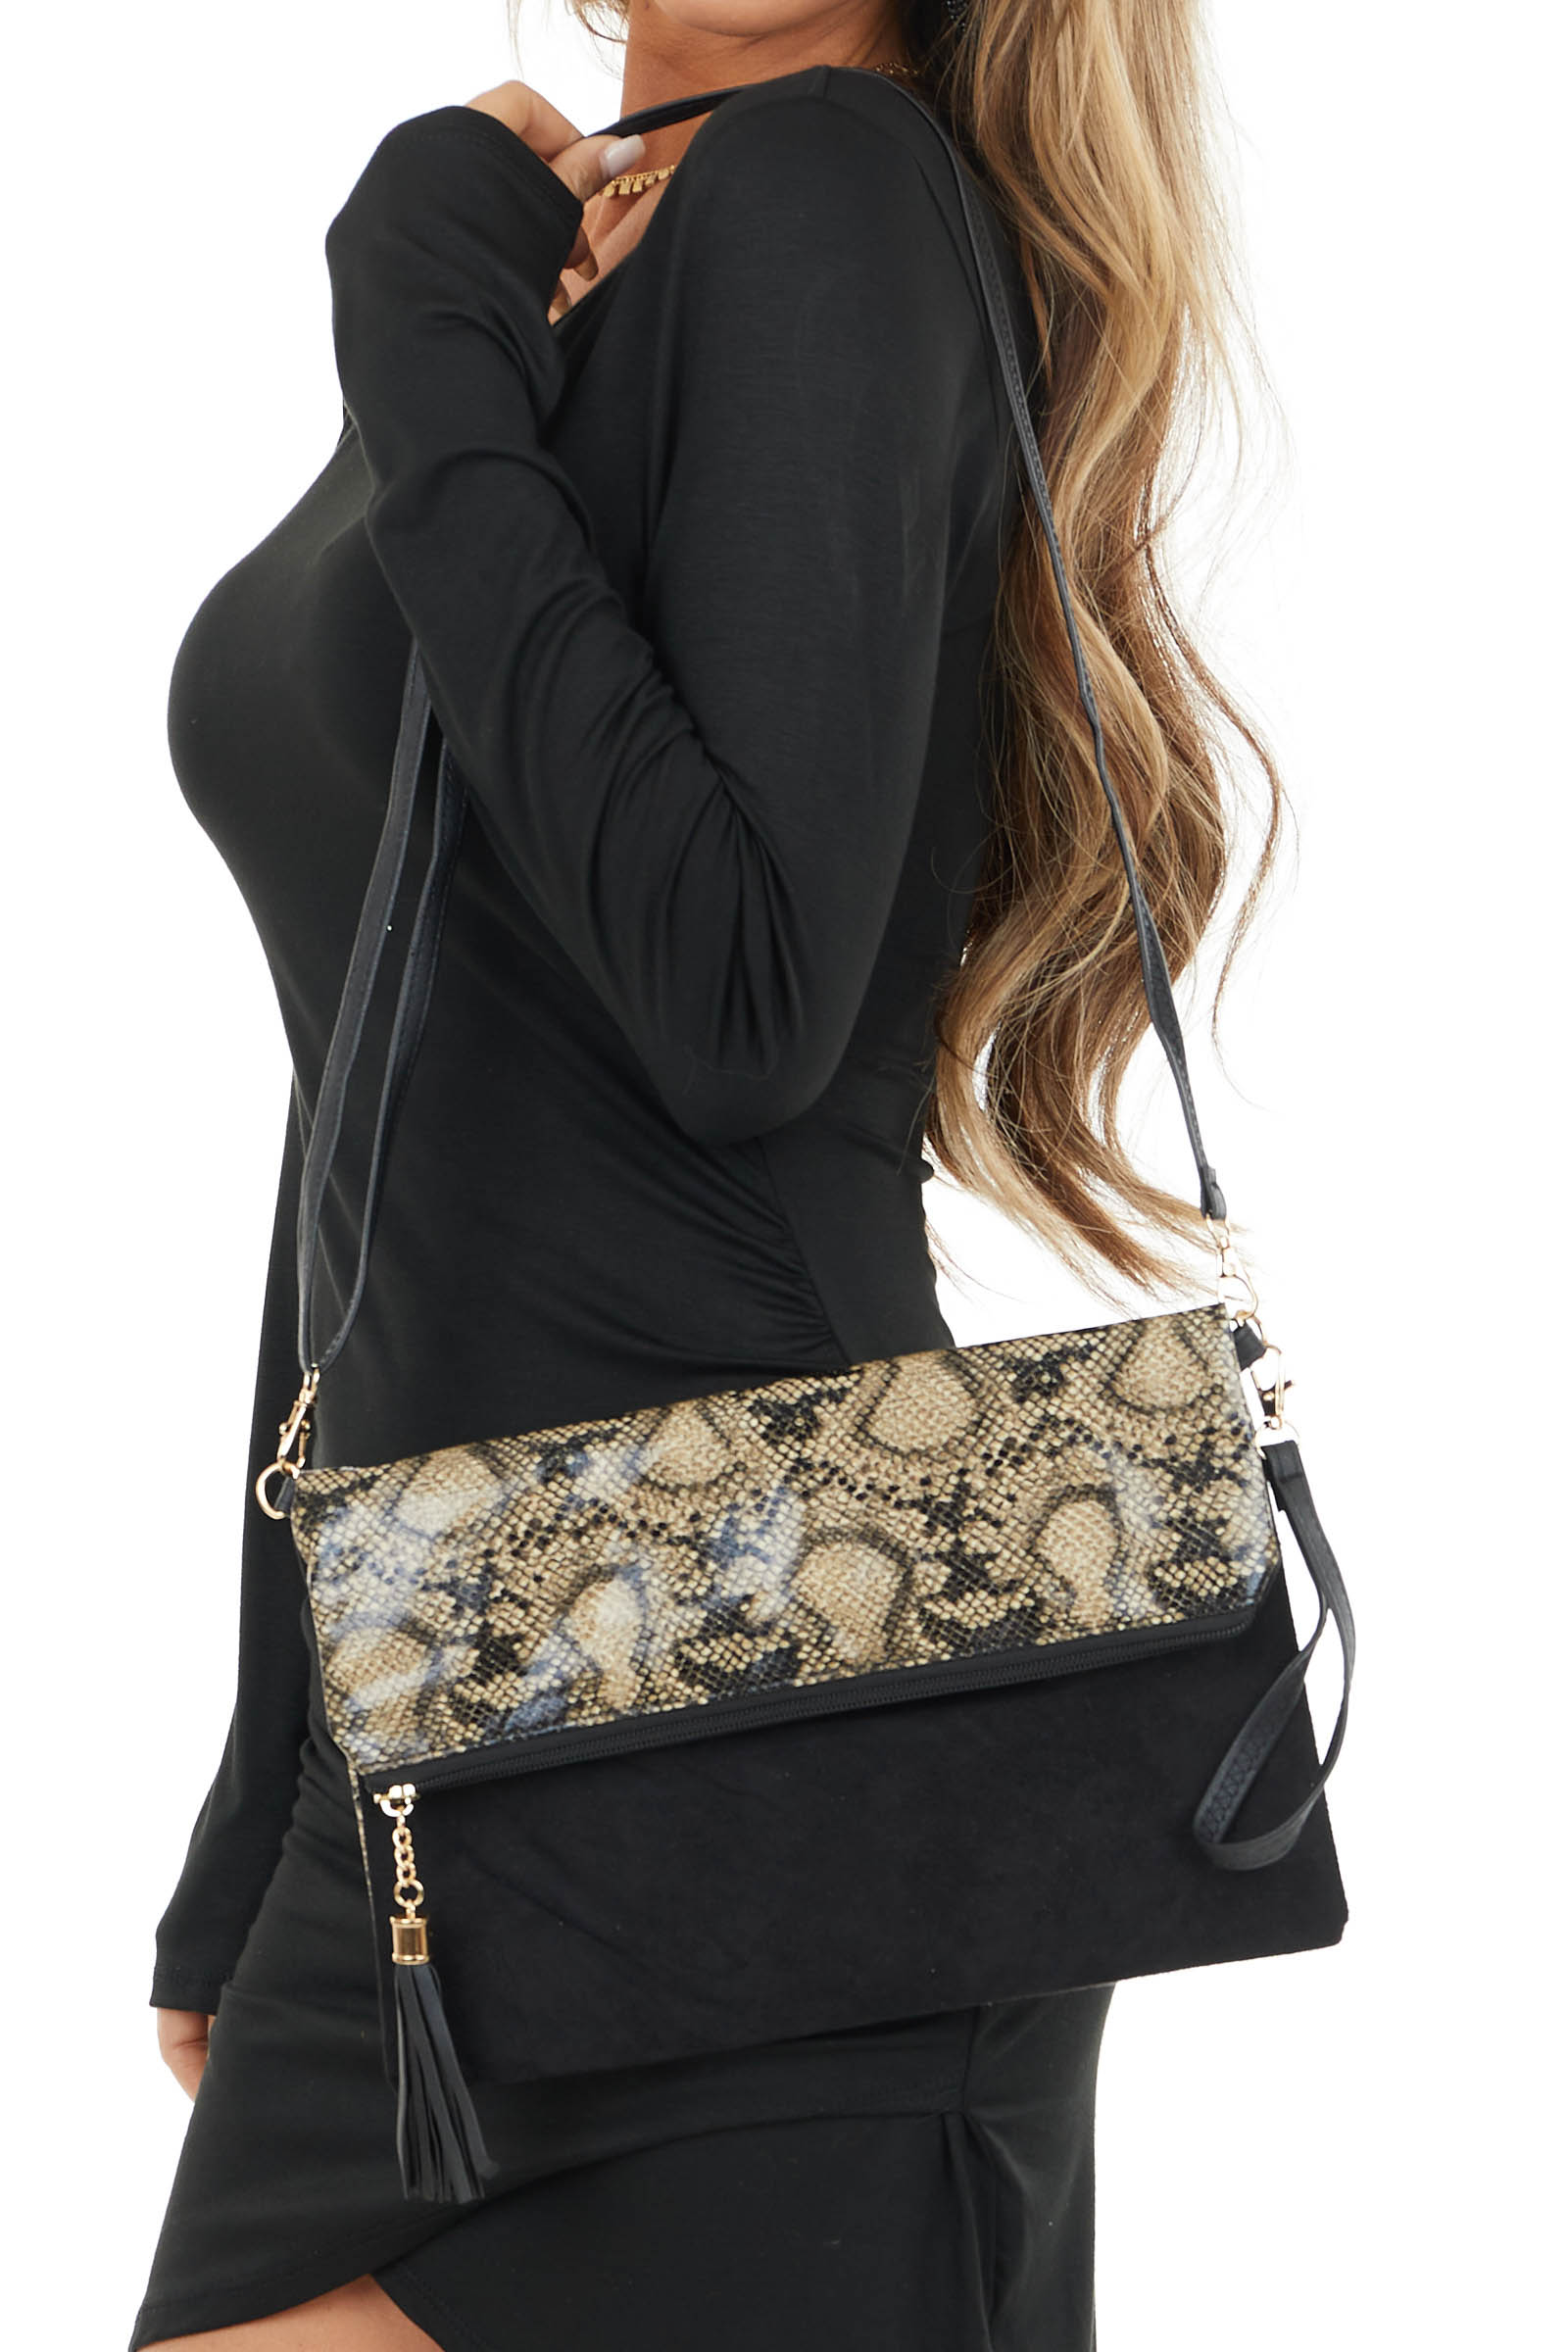 Black Snakeskin Print Fold Over Clutch with Zipper Opening